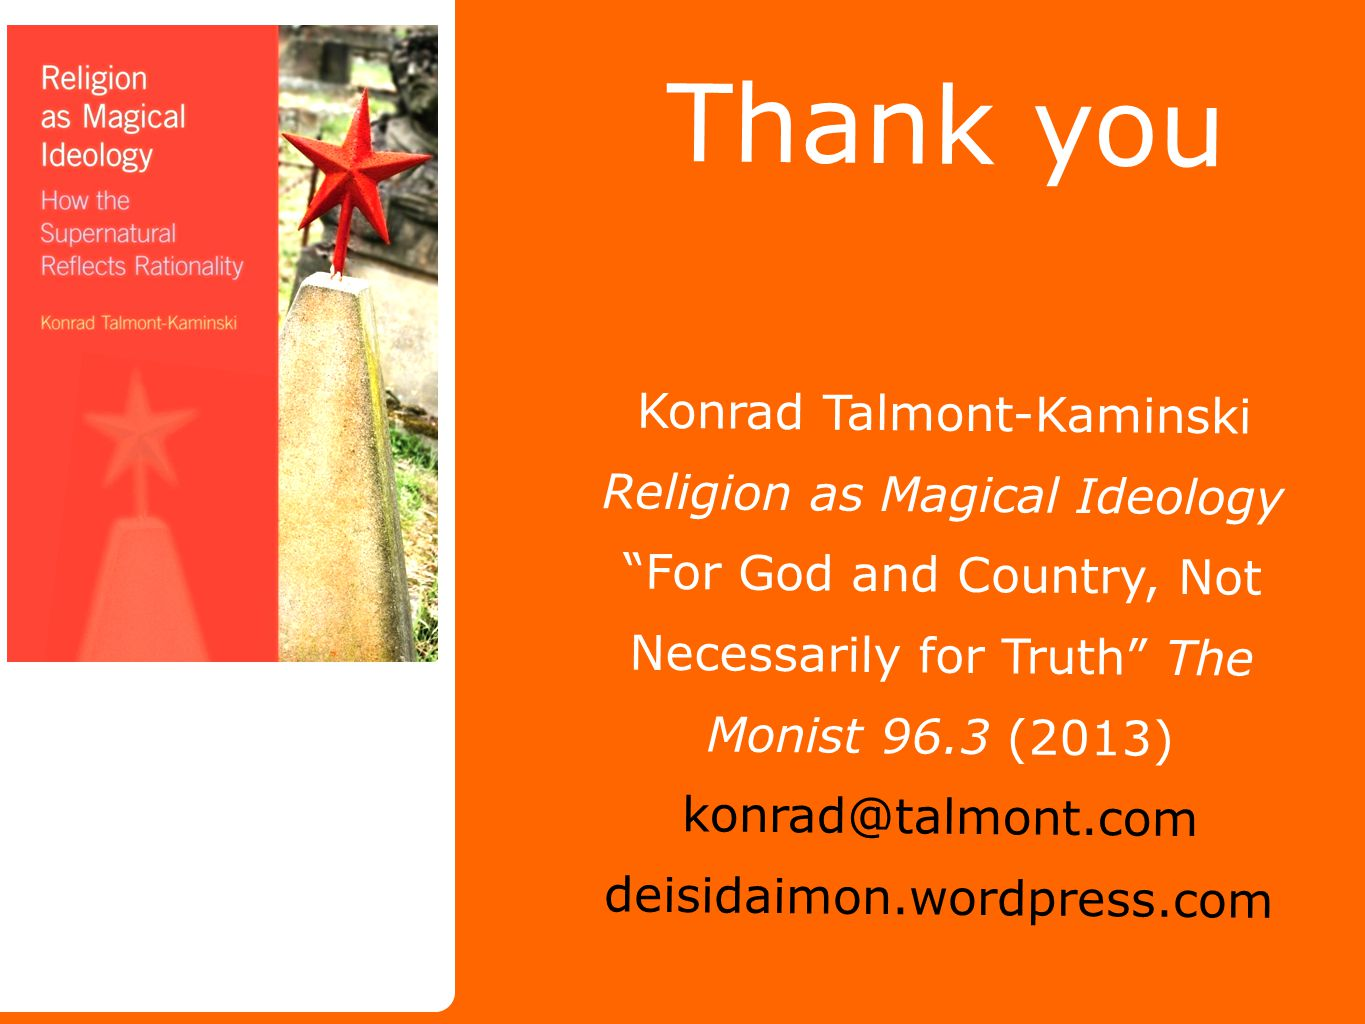 Thank you Konrad Talmont-Kaminski Religion as Magical Ideology For God and Country, Not Necessarily for Truth The Monist 96.3 (2013) konrad@talmont.com deisidaimon.wordpress.com